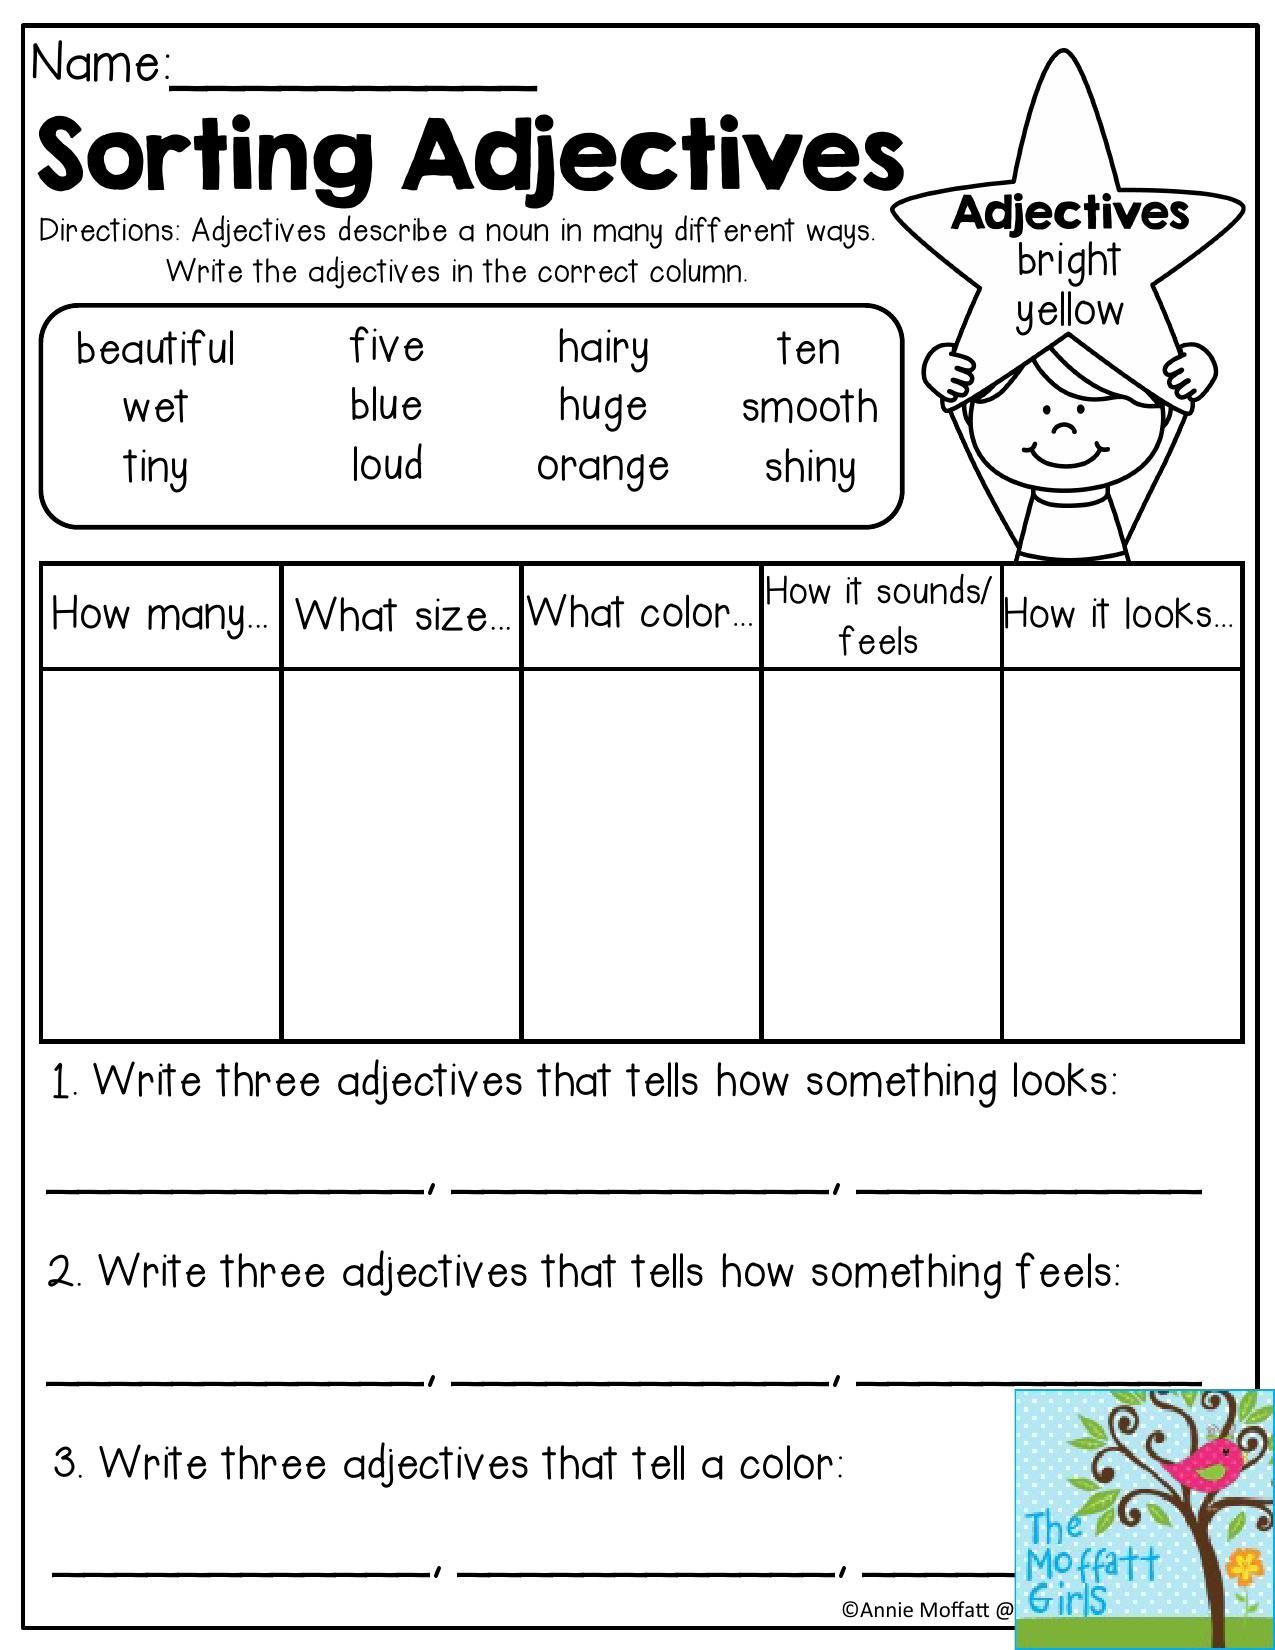 Adjective Worksheets 1st Grade sorting Adjectives Adjectives Describe A Noun In Many